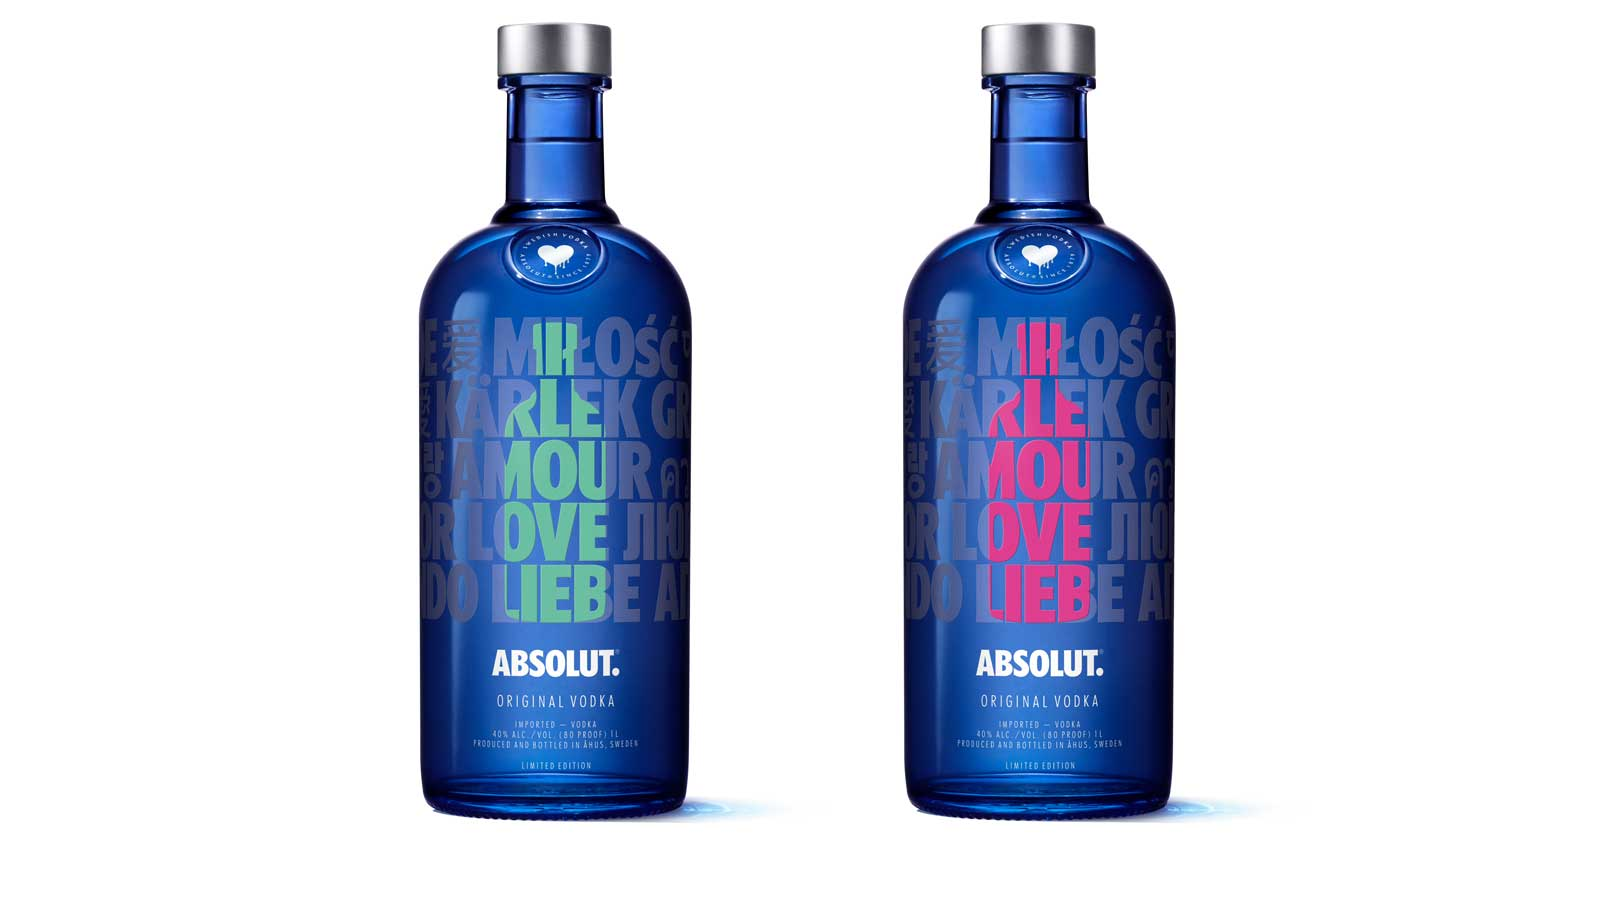 Could hate ever be used to spread love across the world? Find out how Absolut has made this happen